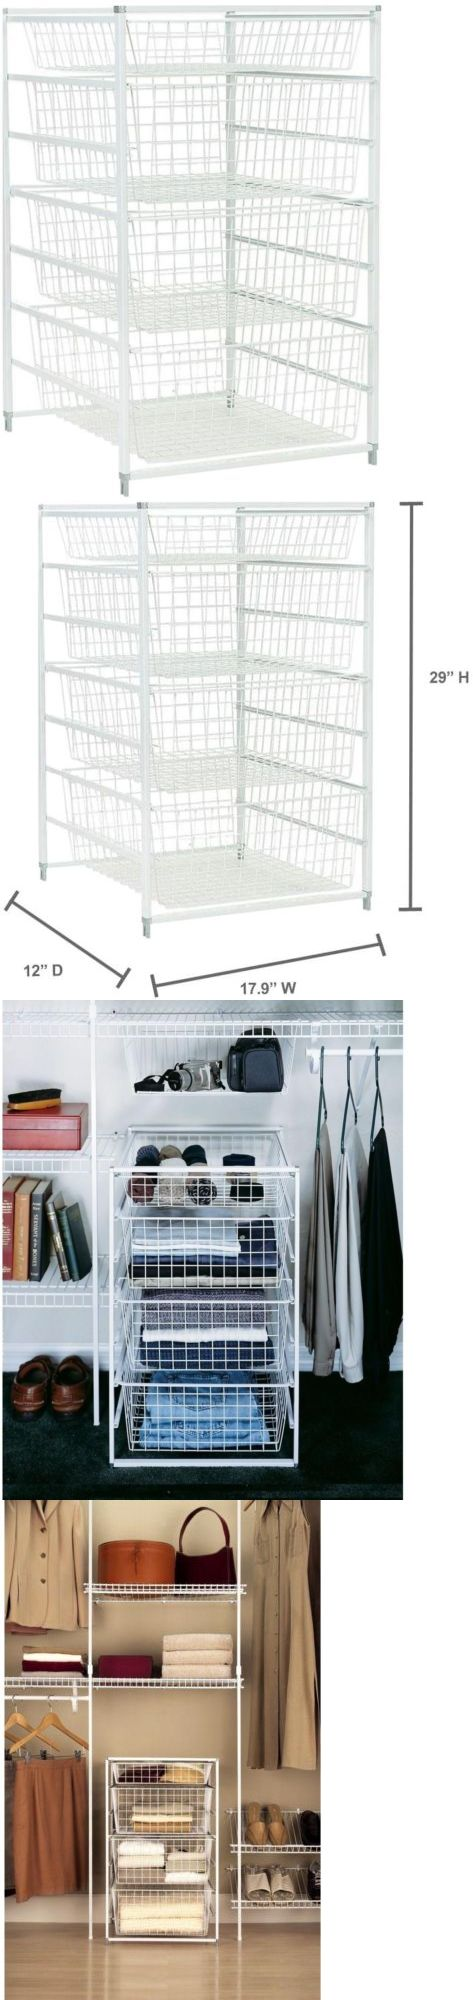 White tilt out clothes storage basket bin bathroom drawer ebay - Storage Bins And Baskets 159898 Closetmaid 29 Steel Drawer Kit Closet Storage Organizer White W